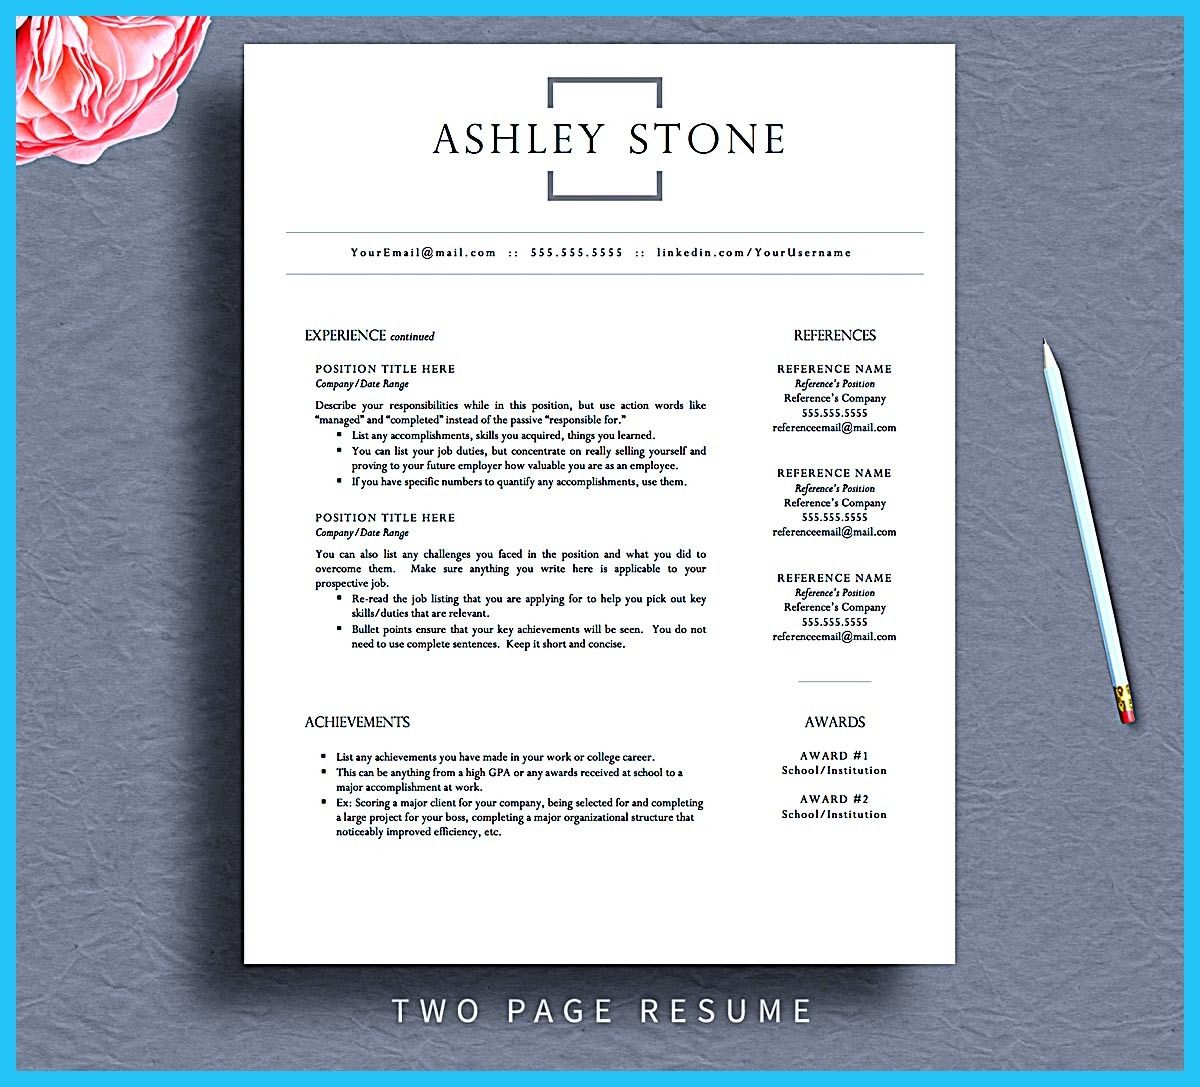 Acting Resume Beginner Cool Nice Impressive Actor Resume Sample To Make  Resume Template .